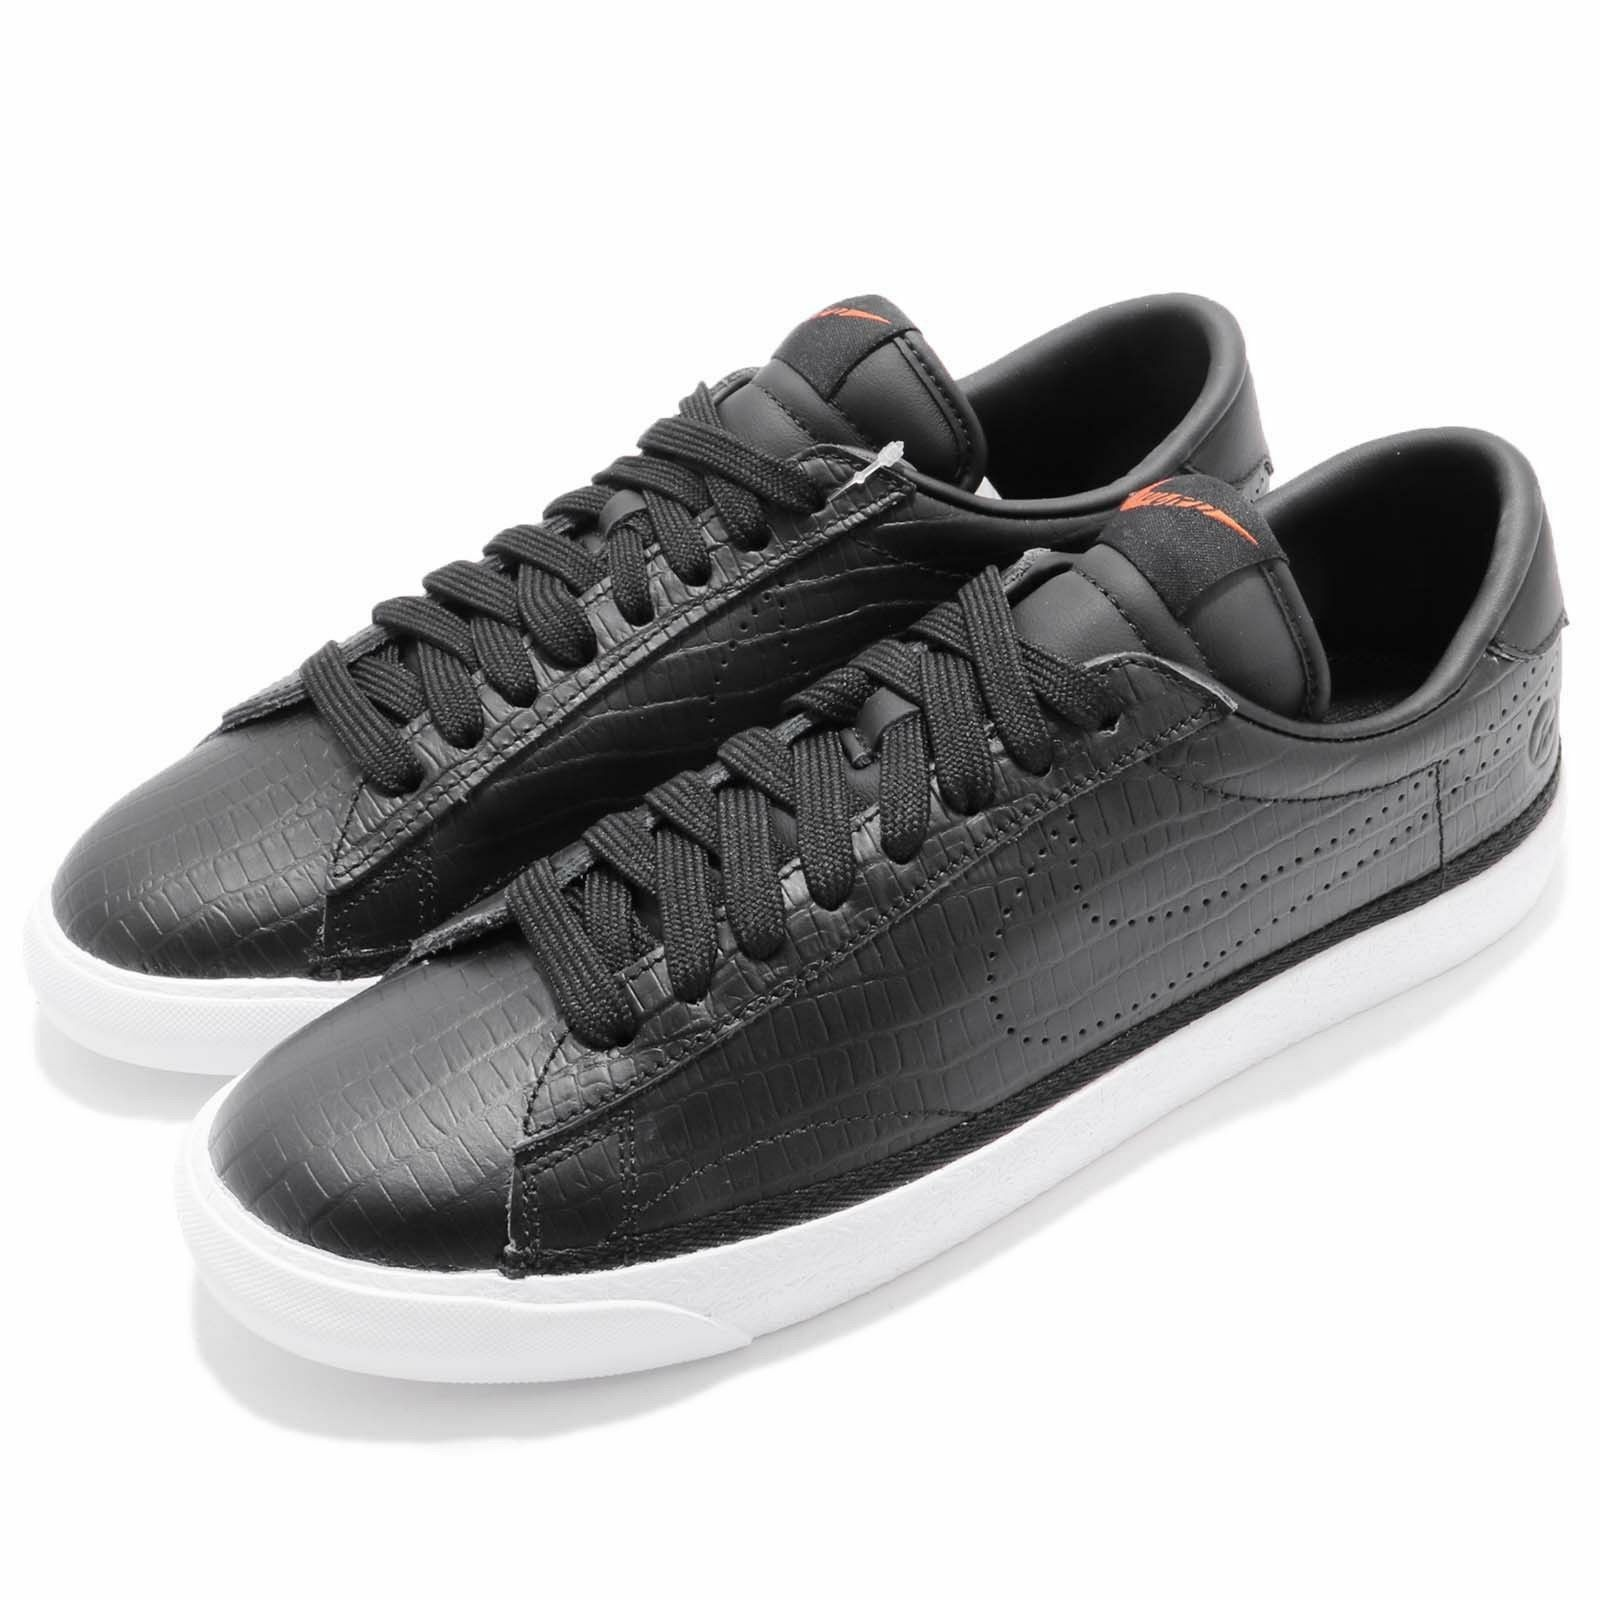 NIKE AIR ZOOM TENNIS CLASSIC AC/FGMT MENS CASUAL SHOES BLACK 857953 857953 BLACK 001 6a87e7